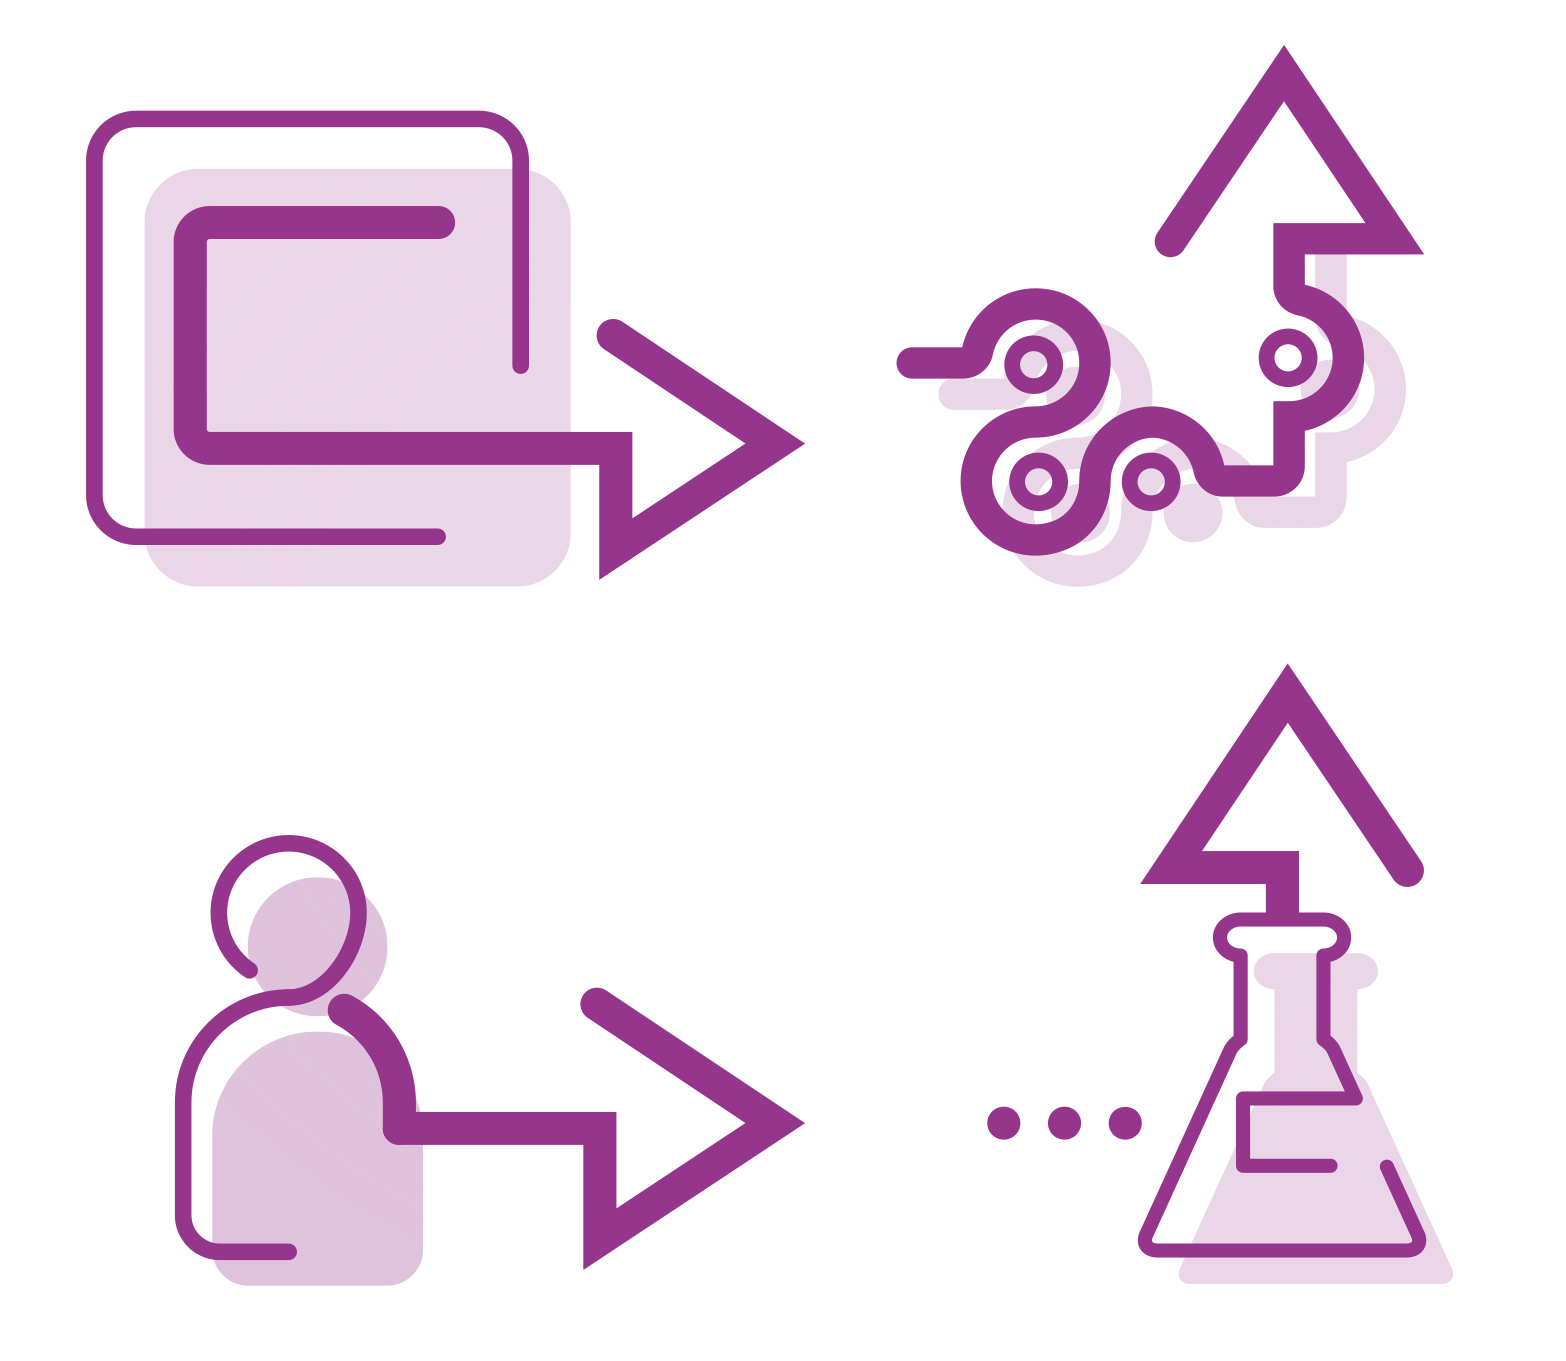 icons_4-set_purple_big.png__1566x1361_q85_crop_subsampling-2_upscale.png